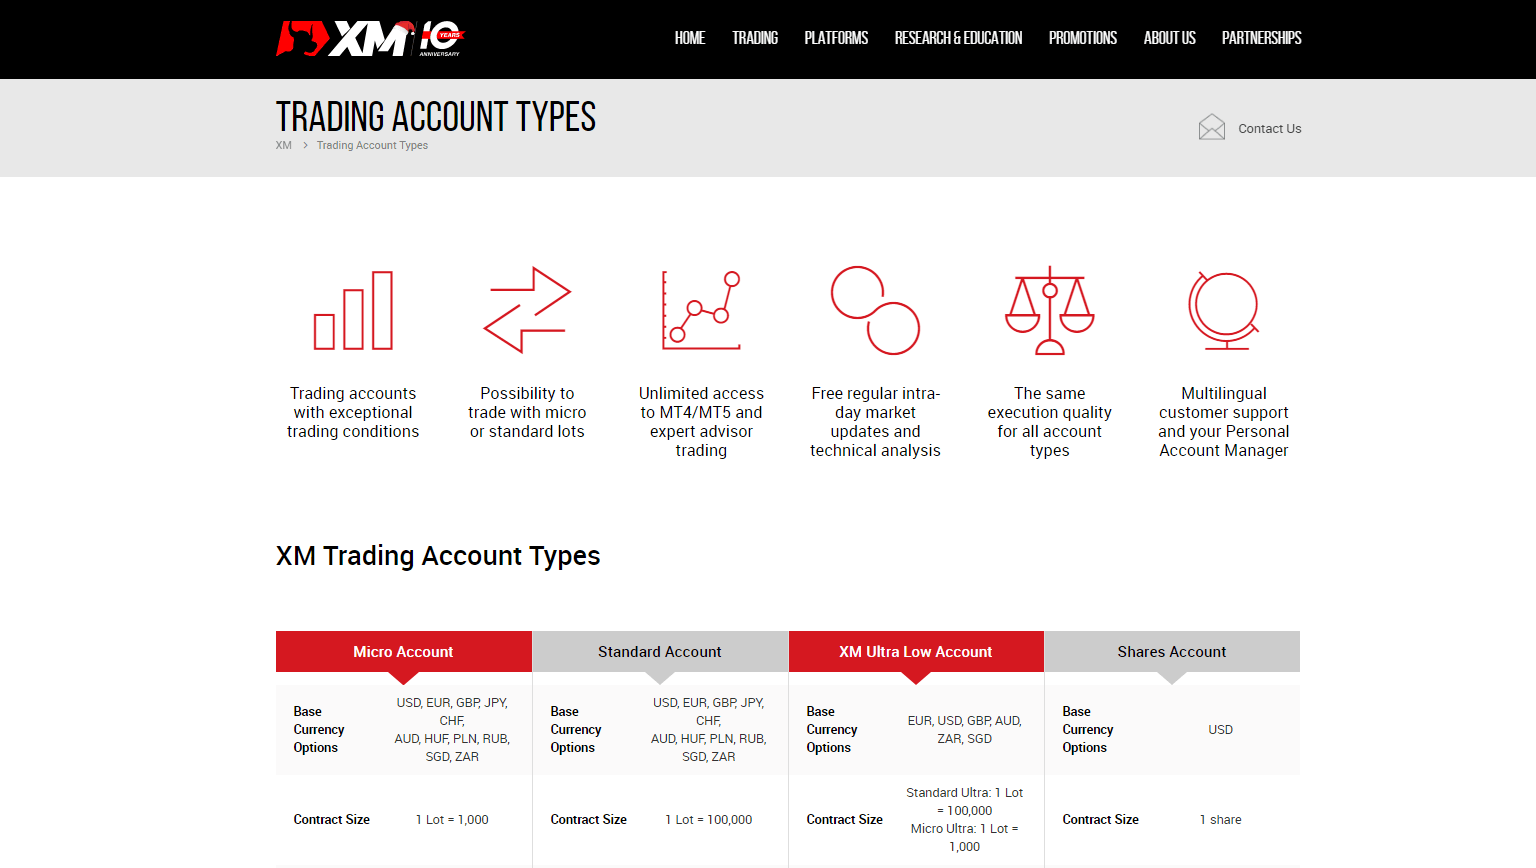 XM Trading Account Types